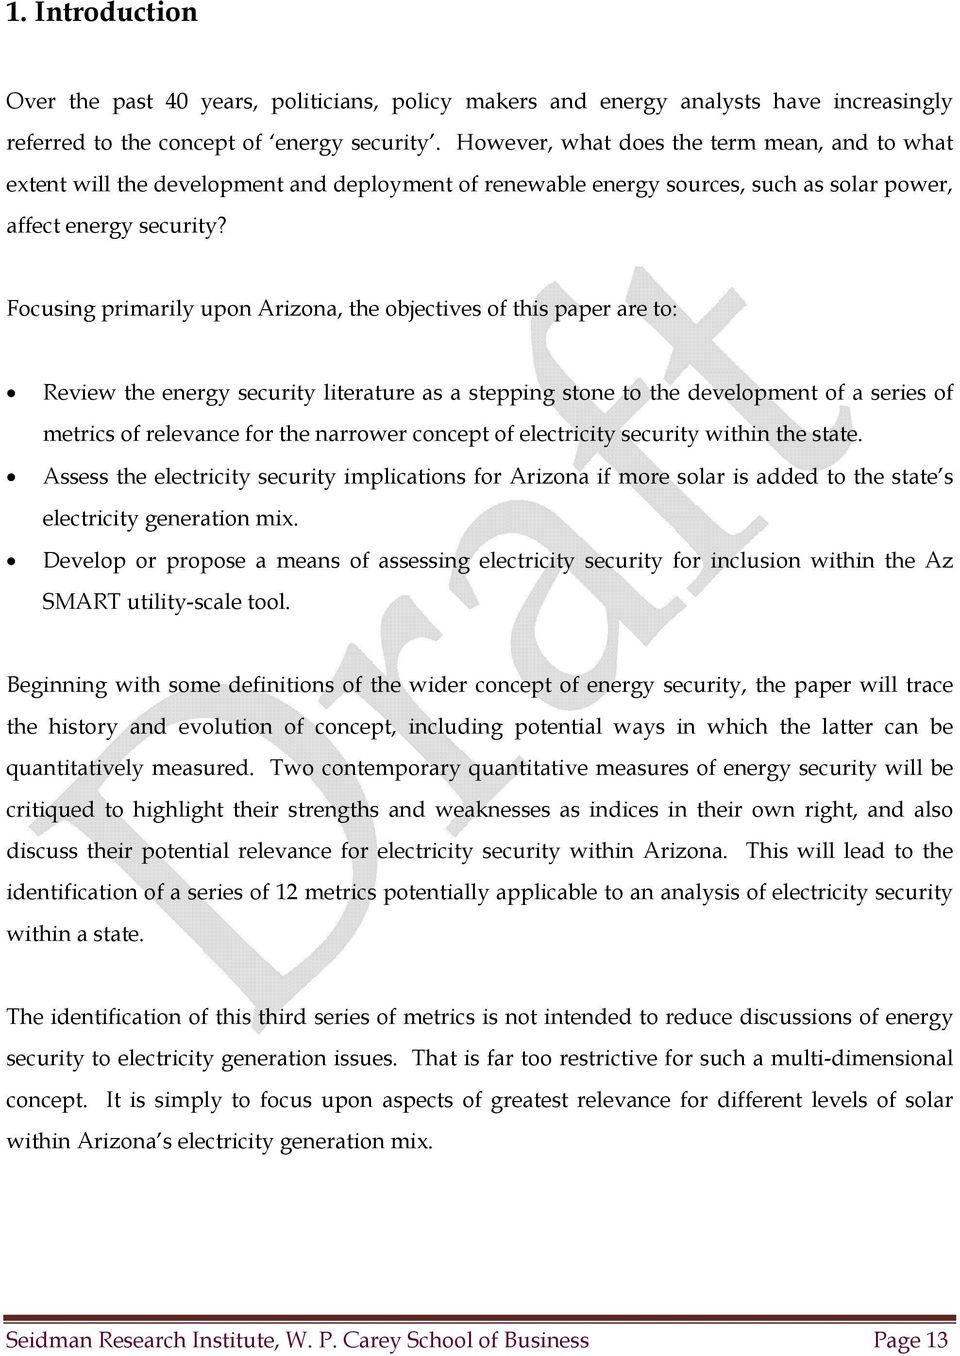 Focusing primarily upon Arizona, the objectives of this paper are to: Review the energy security literature as a stepping stone to the development of a series of metrics of relevance for the narrower